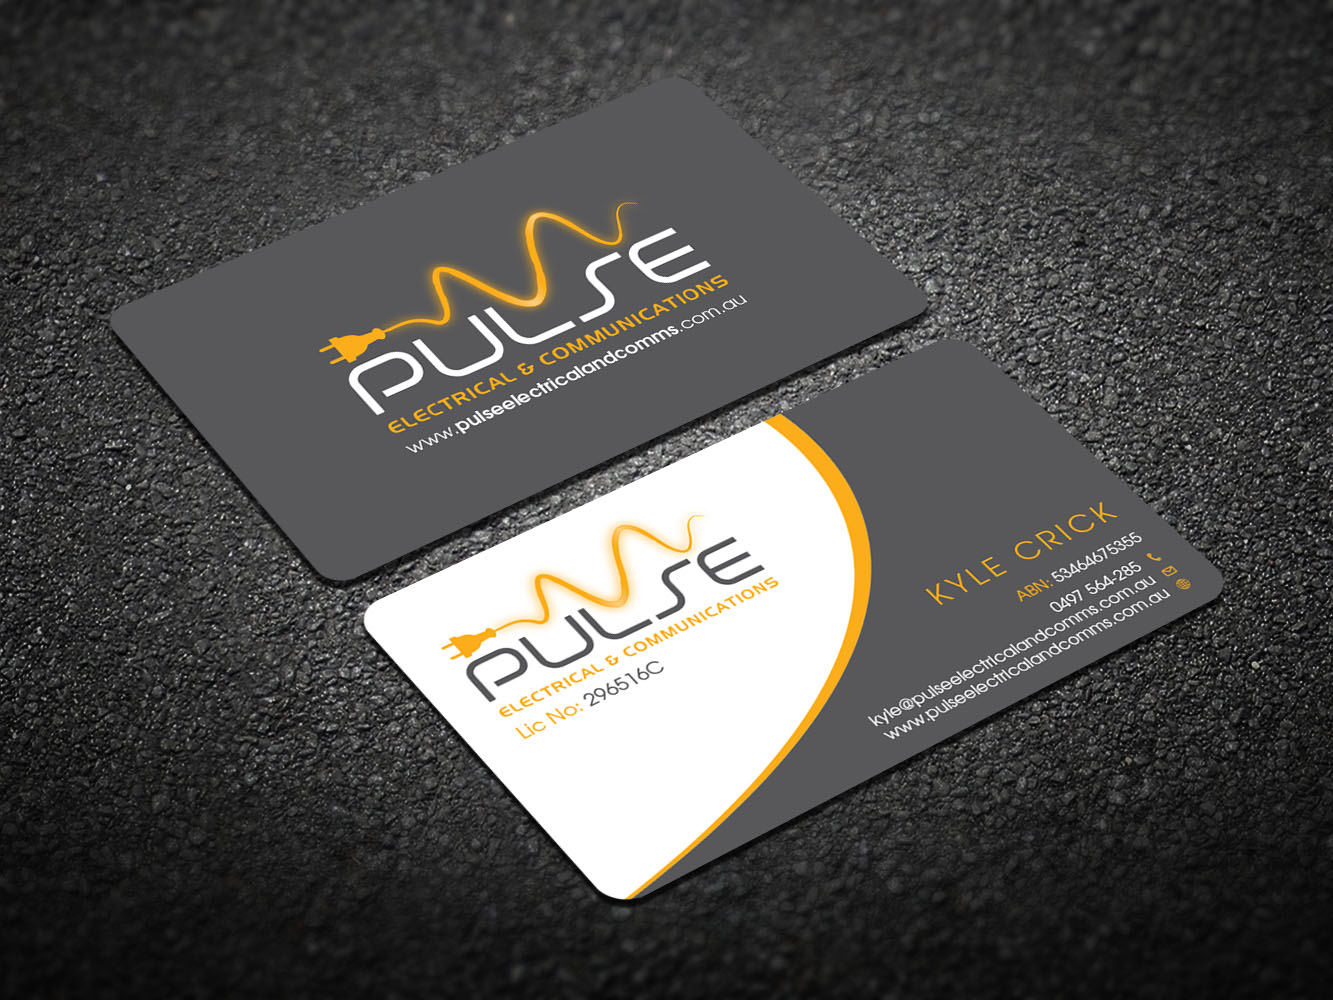 203 professional business card designs electrician business card business card design by design xeneration for pulse electrical and communications design reheart Images